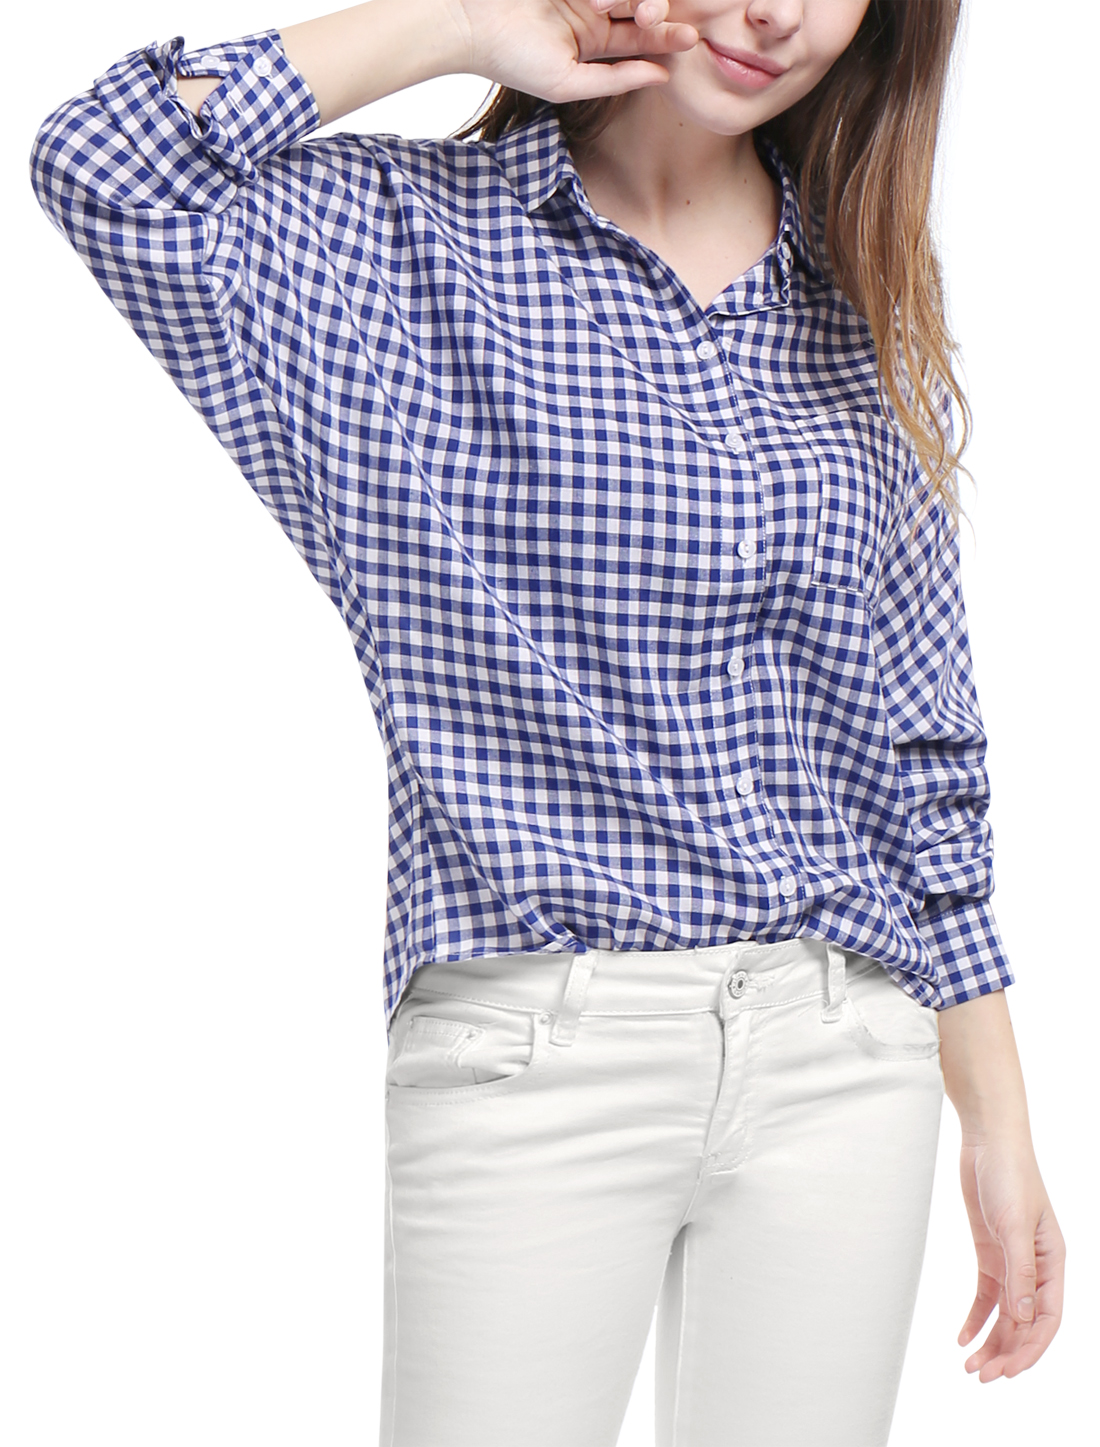 Women Single Breasted Batwing Sleeves Gingham Shirt Blue L